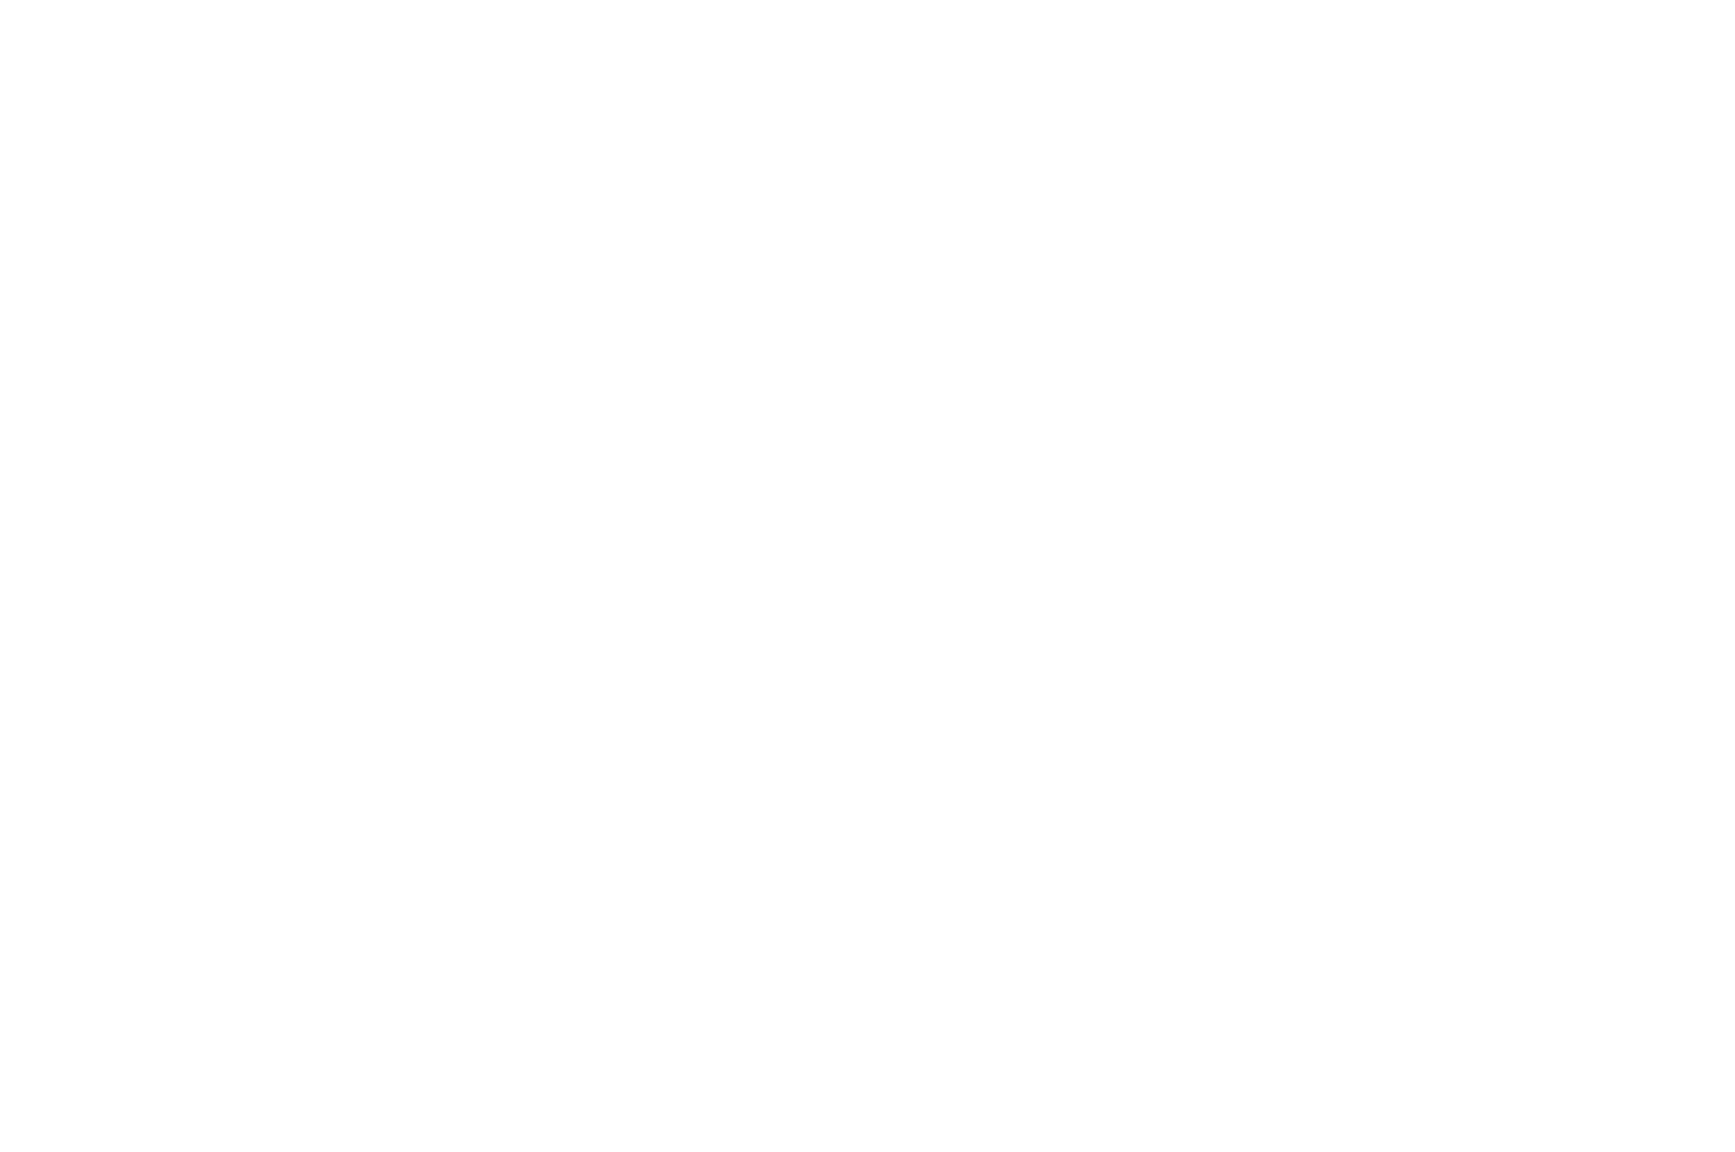 BEST DIRECTOR  - TMFF - The Monthly Film Festival - 2016